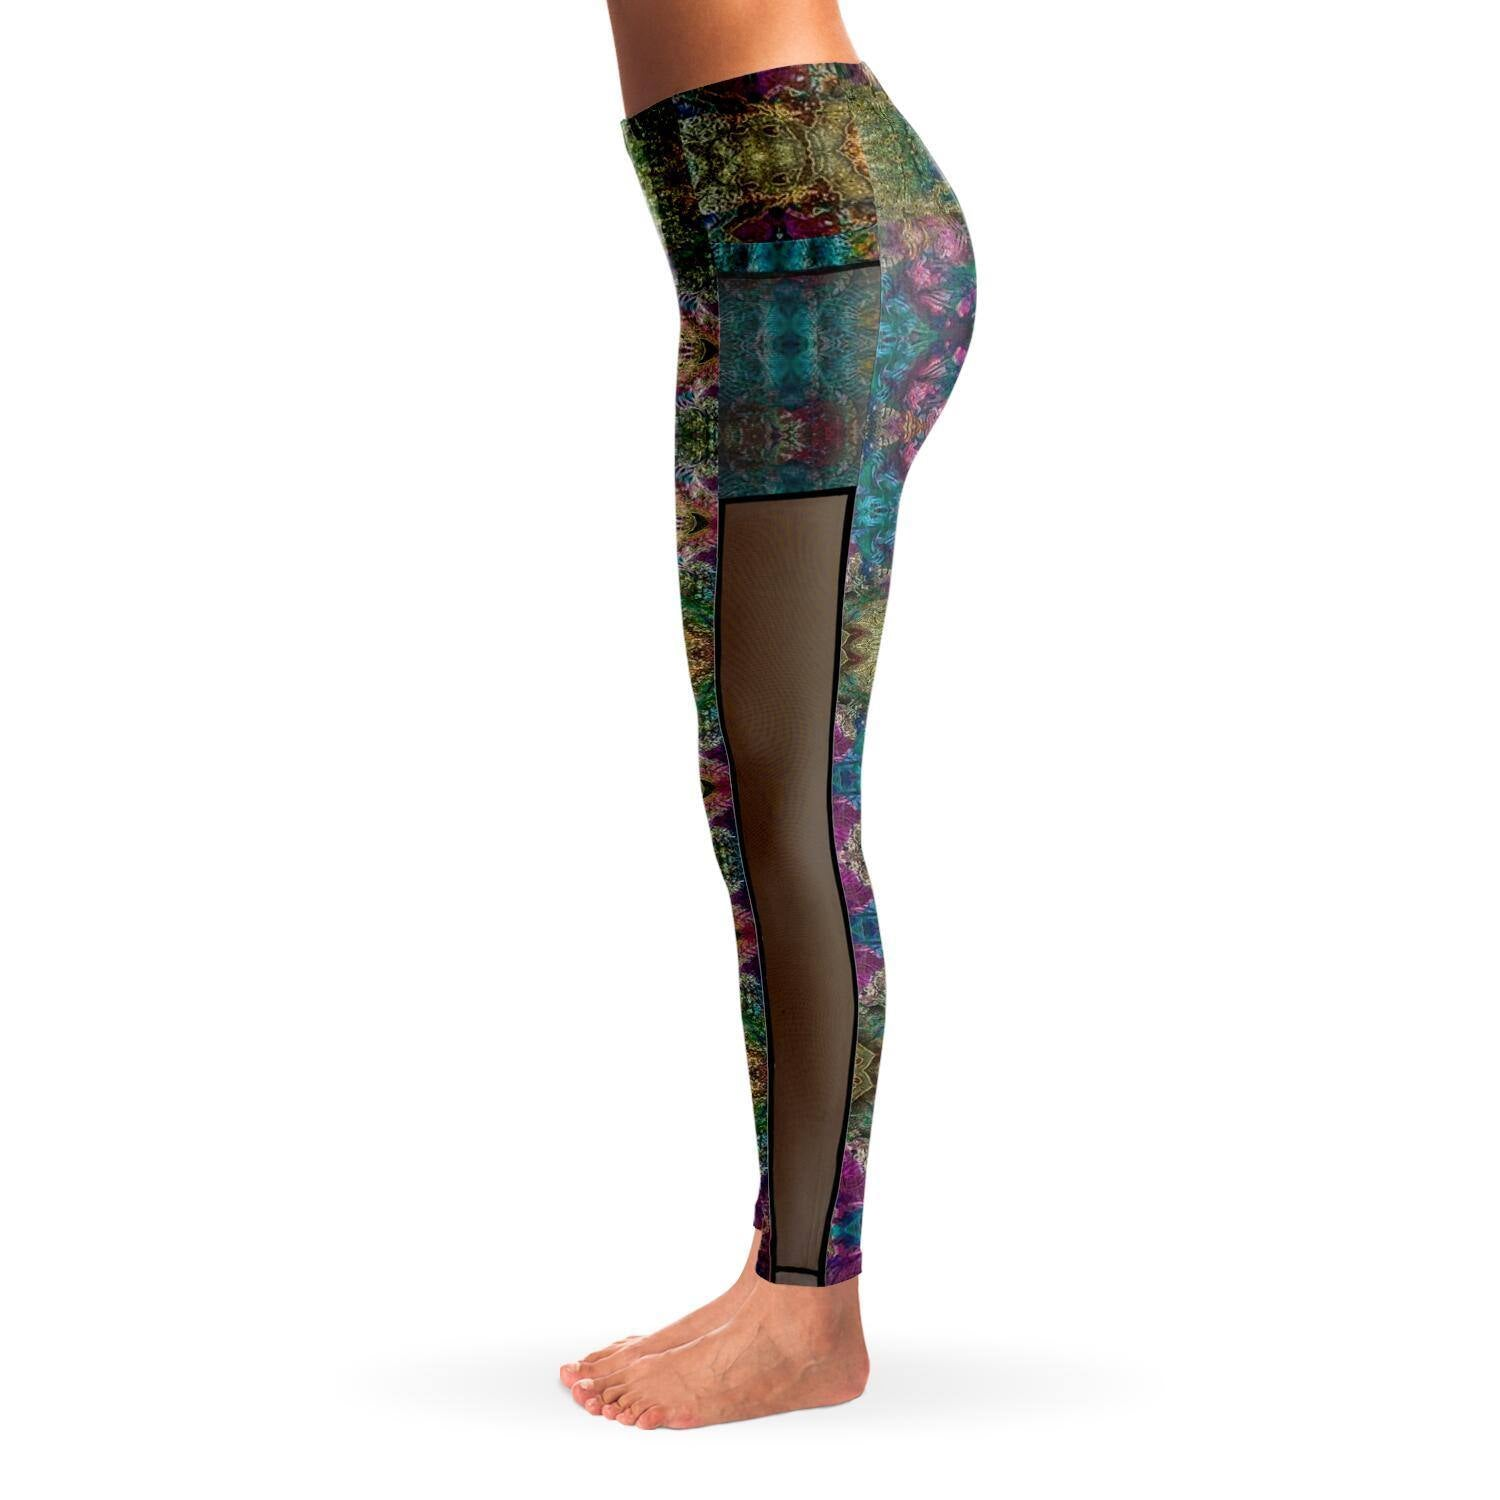 SPIRIT GUIDE PREMIUM MESH POCKET YOGA LEGGINGS